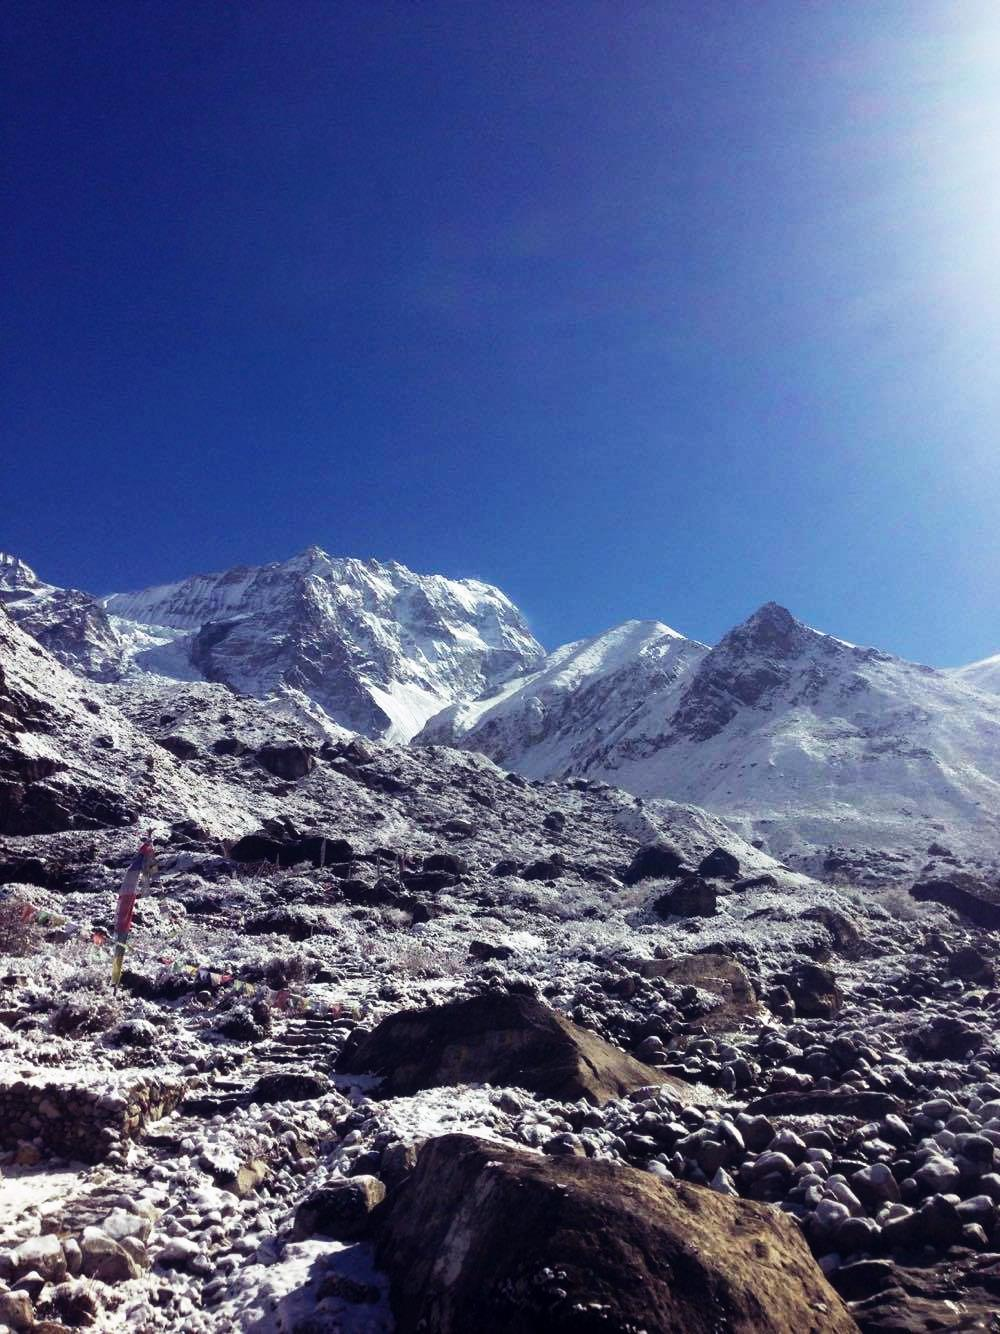 Langtang_snowy_mountains_and-sun2_April_2016_Adventure_Alternative_Nepal.jpg